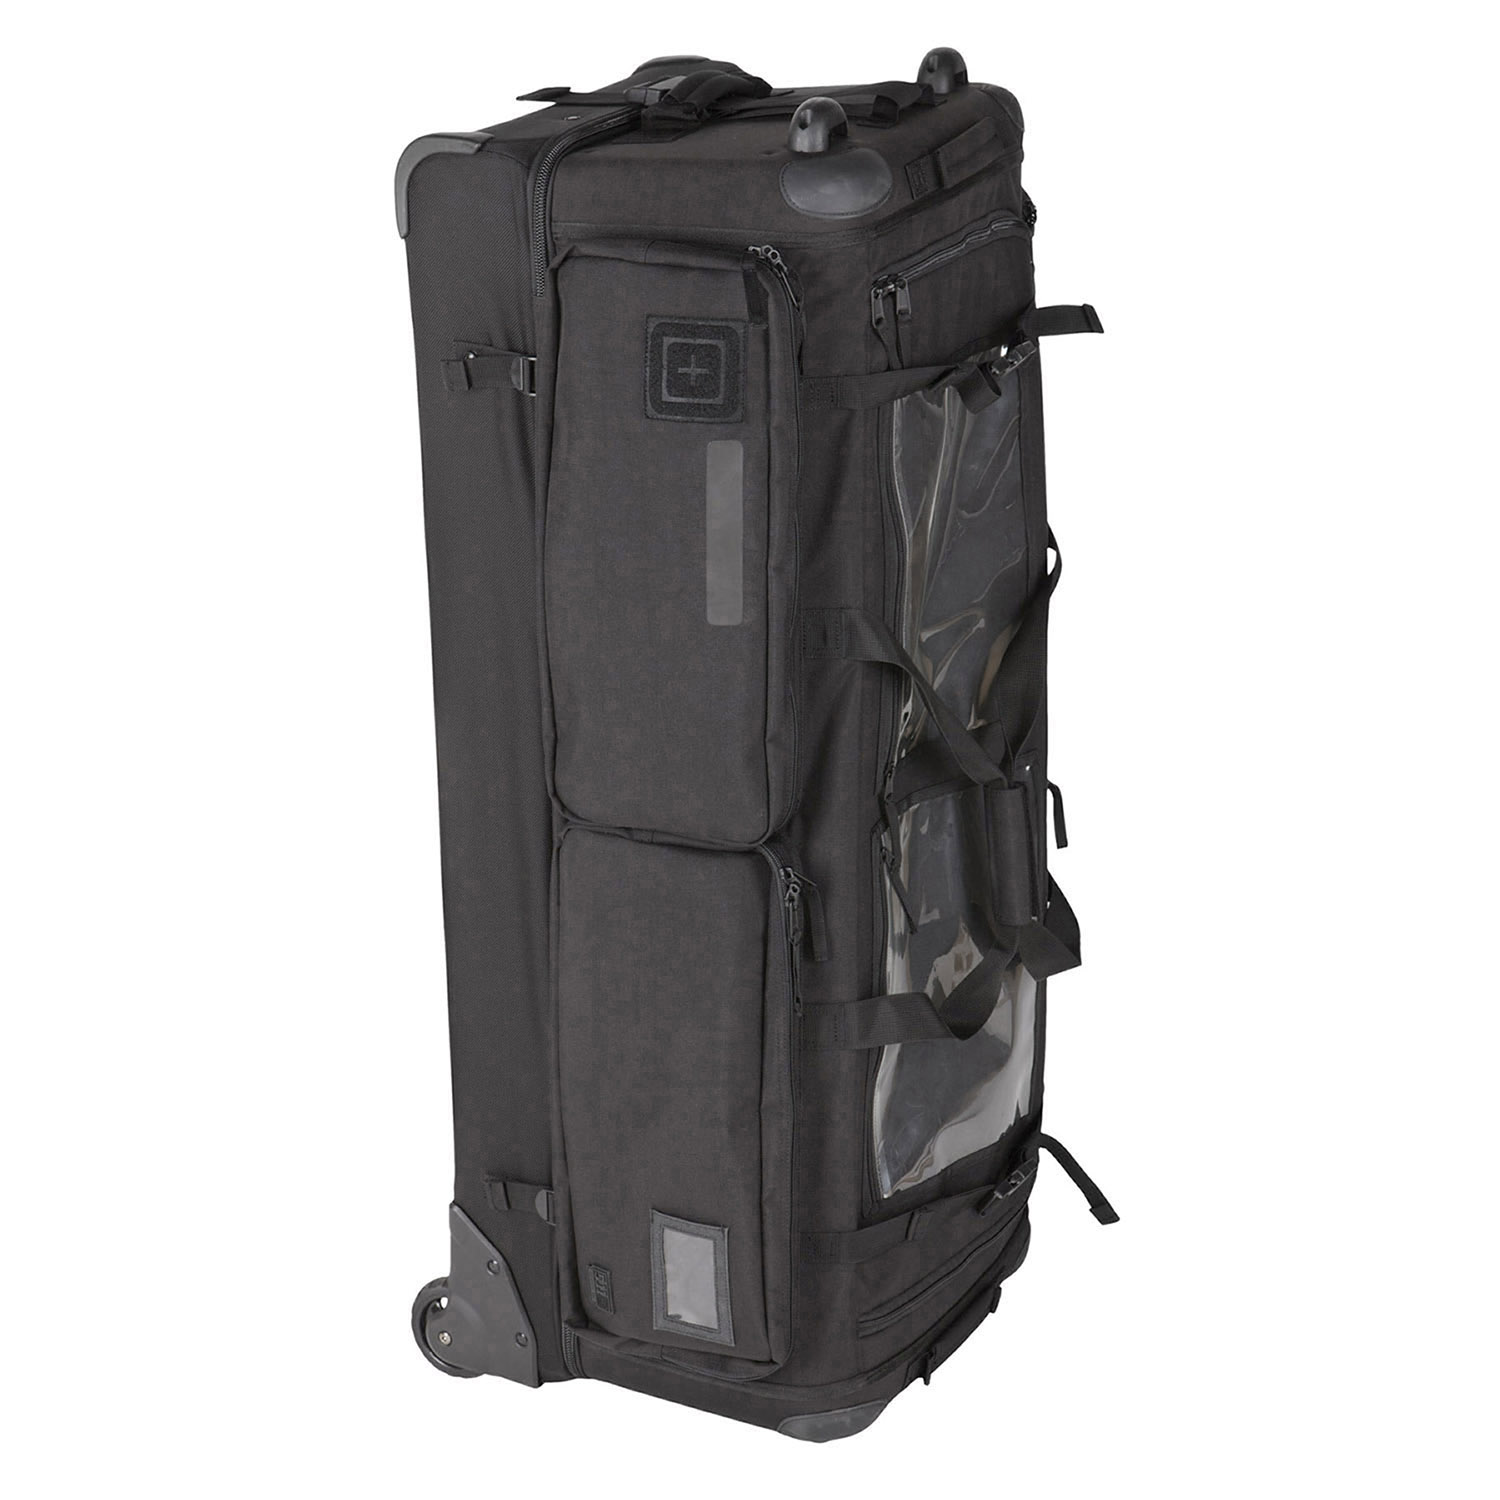 5.11 Tactical CAMS 2.0 Rolling Bag